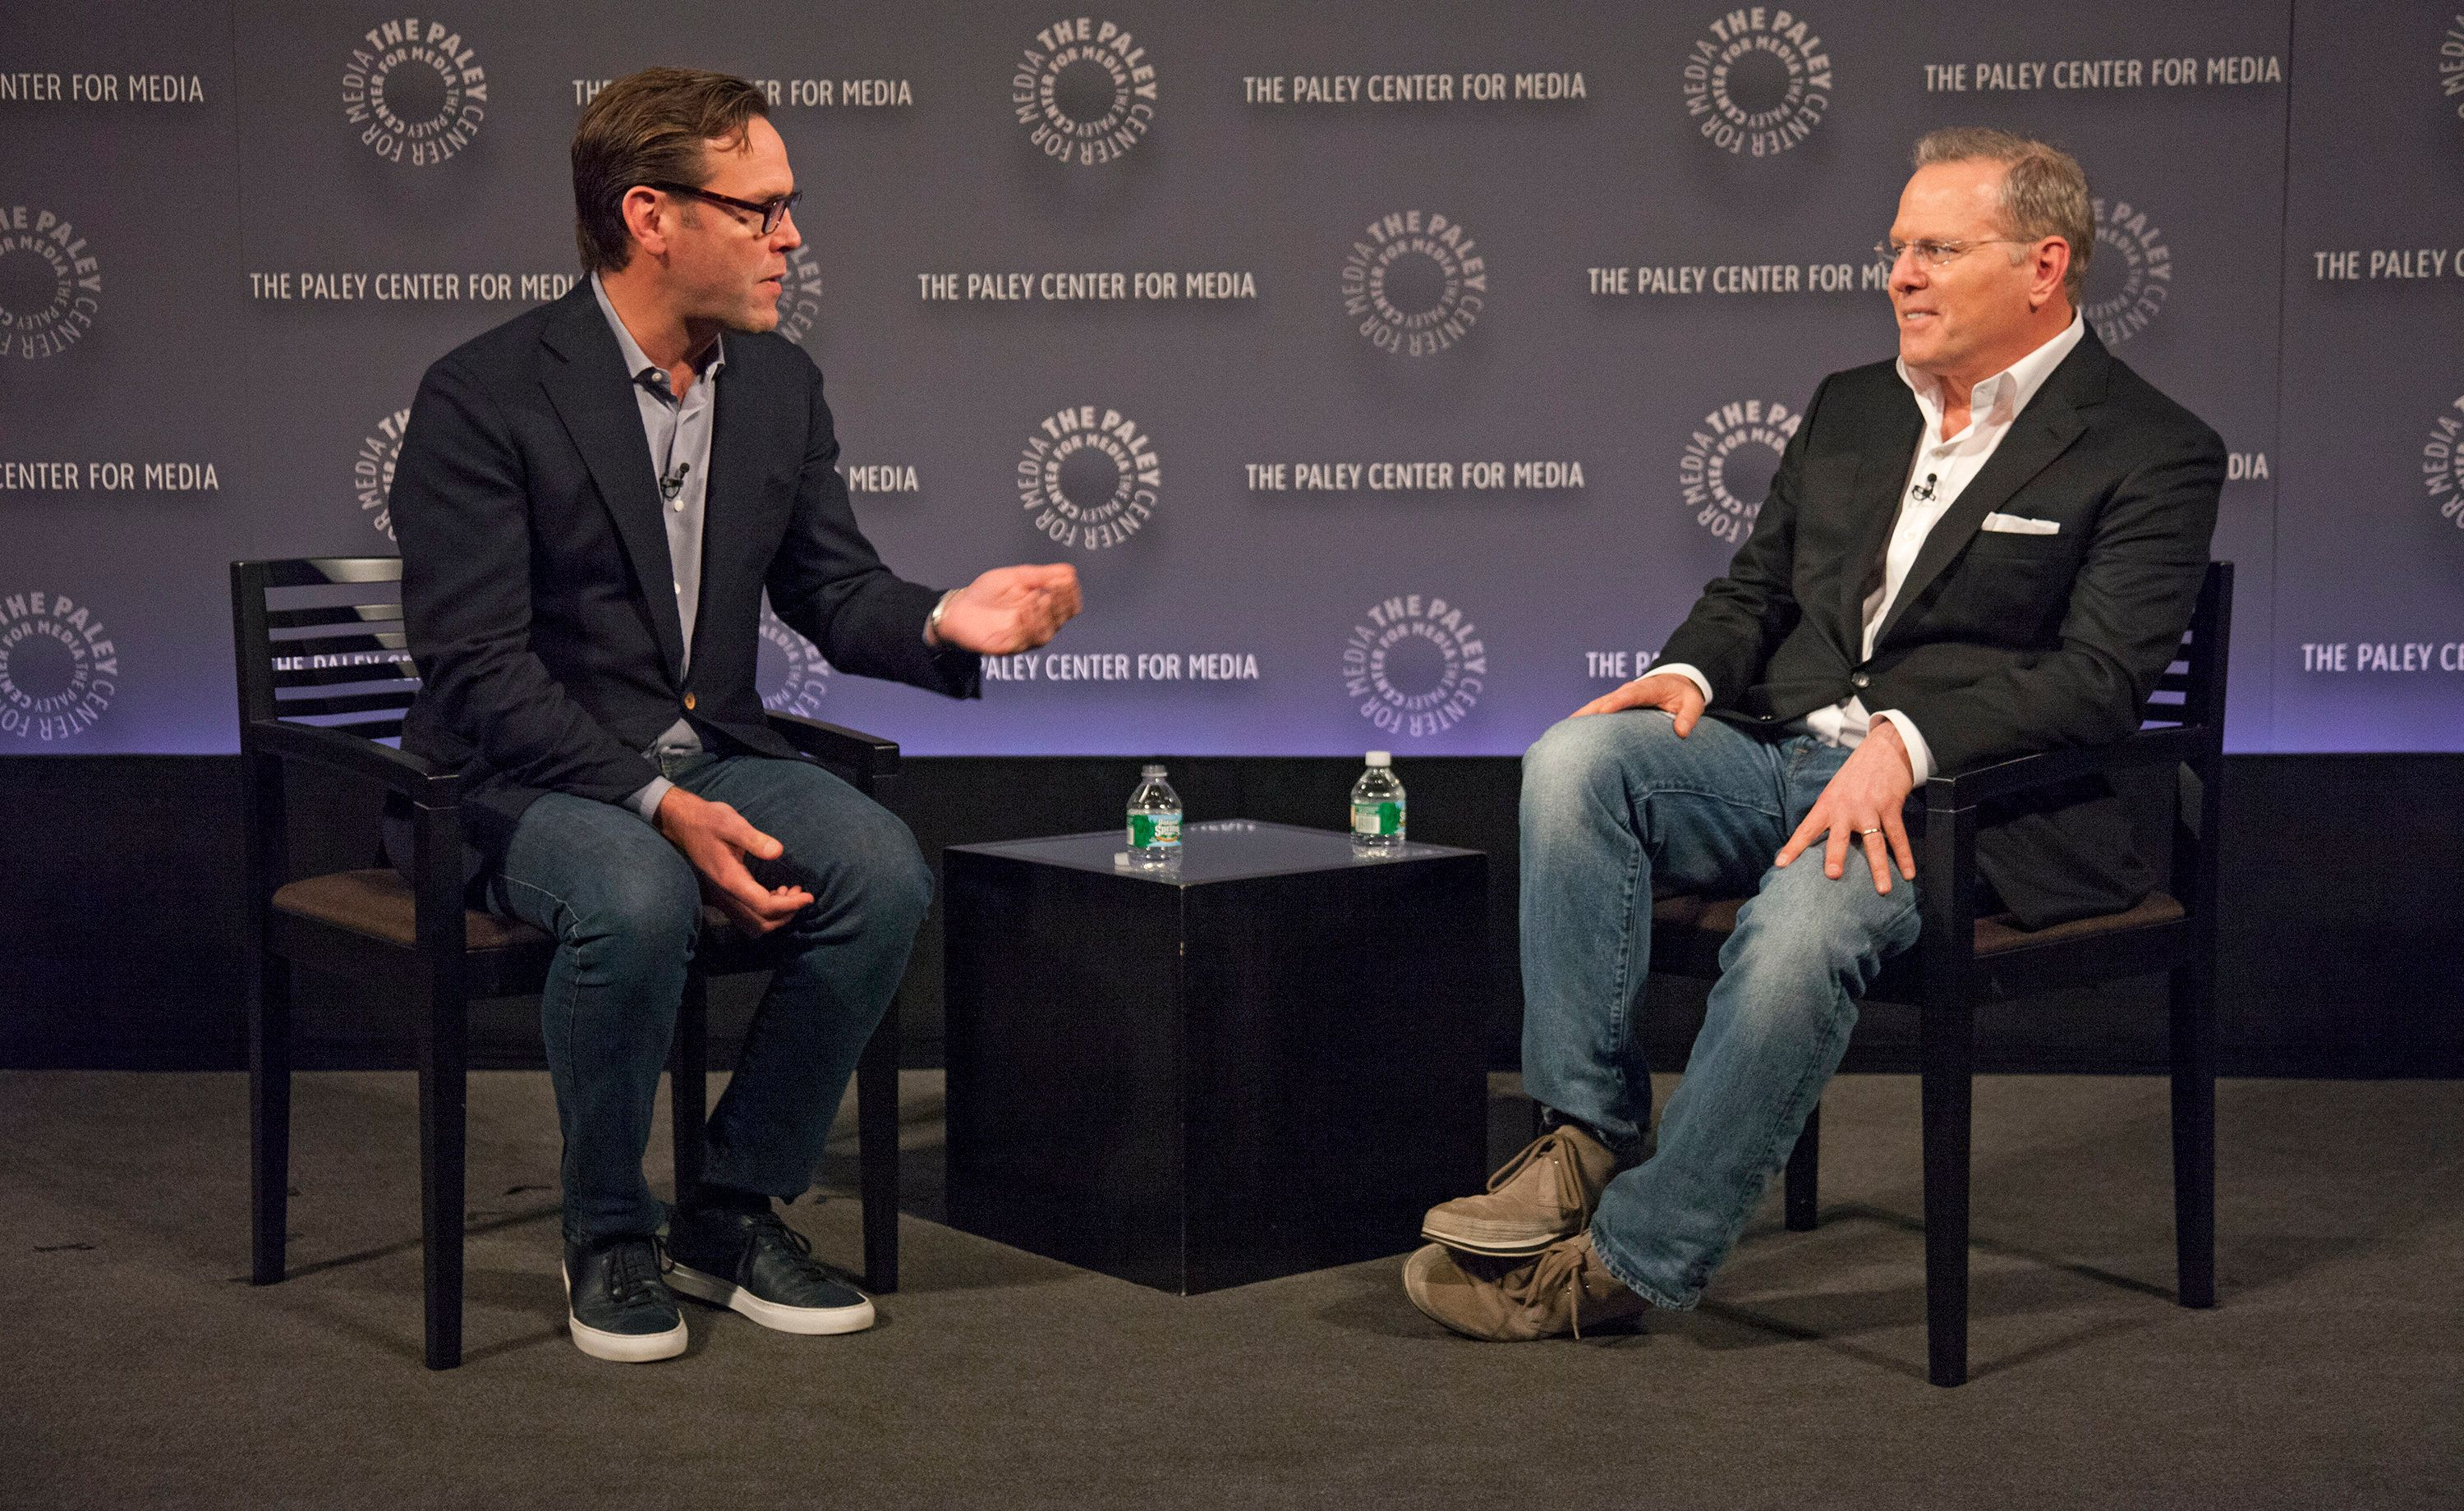 CEO of 21st Century Fox James Murdoch and David Zaslav, President and CEO of Discovery Communications speak at The Paley Center for Media's International Council Summit on Nov. 19th, 2015.